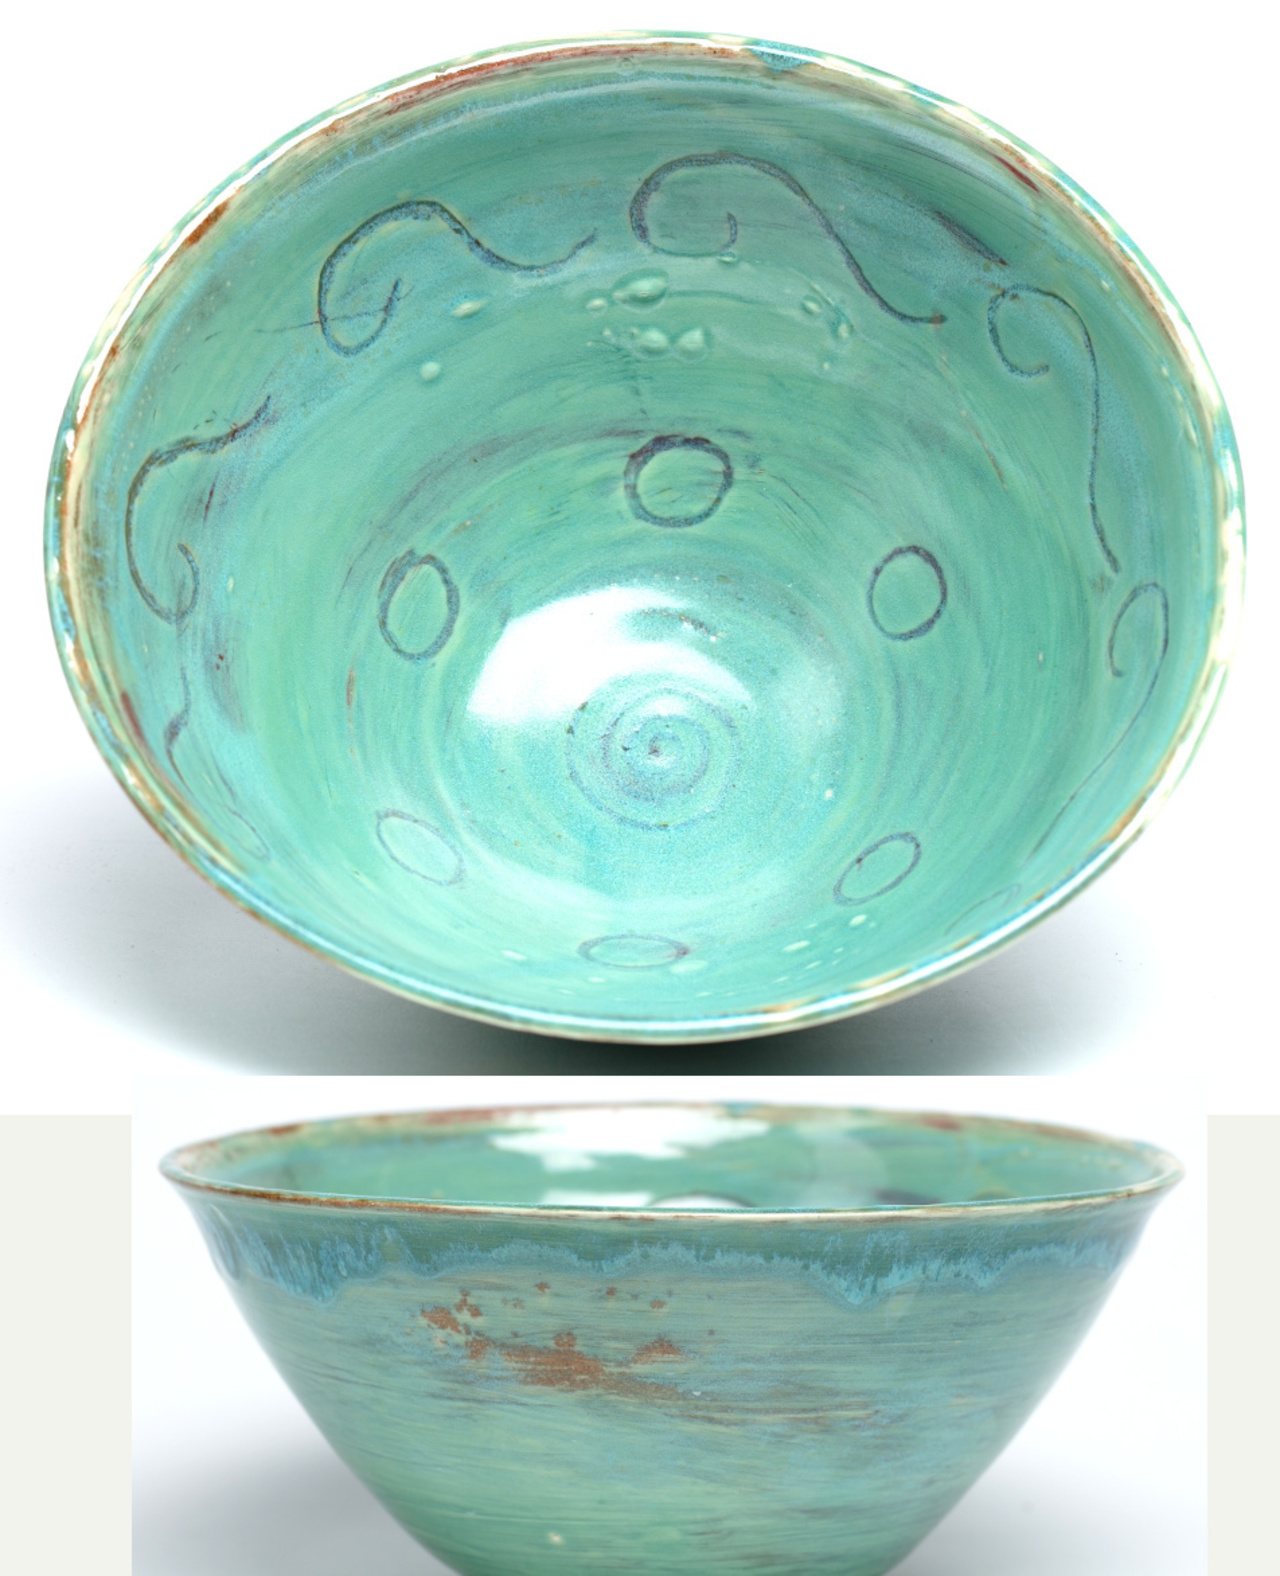 Turquoise large bowl with wave design